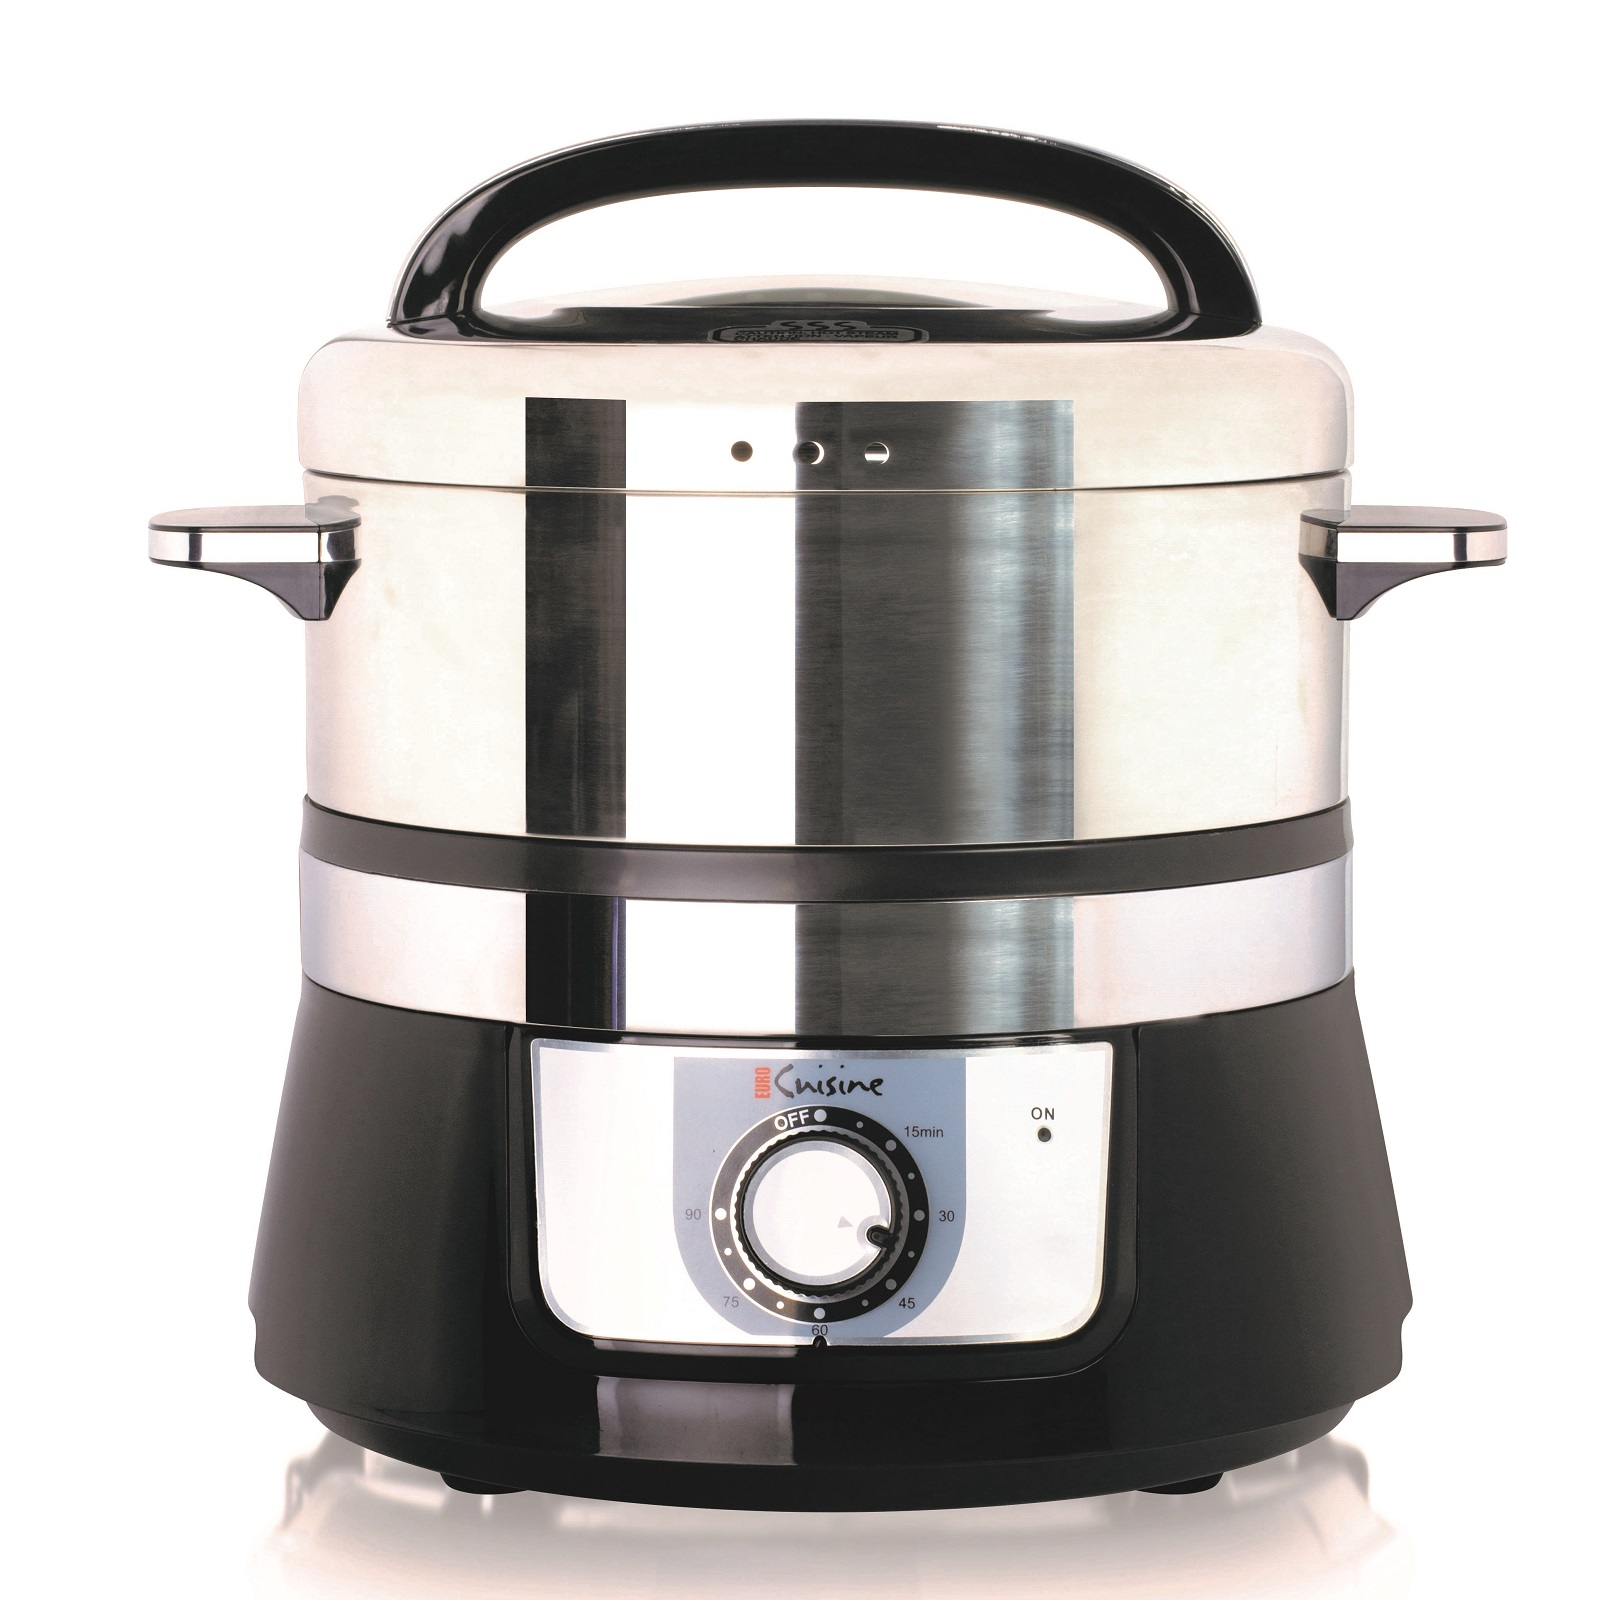 Euro Cuisine Euro Cuisine Fs3200 Stainless Steel Electric Food Steamer